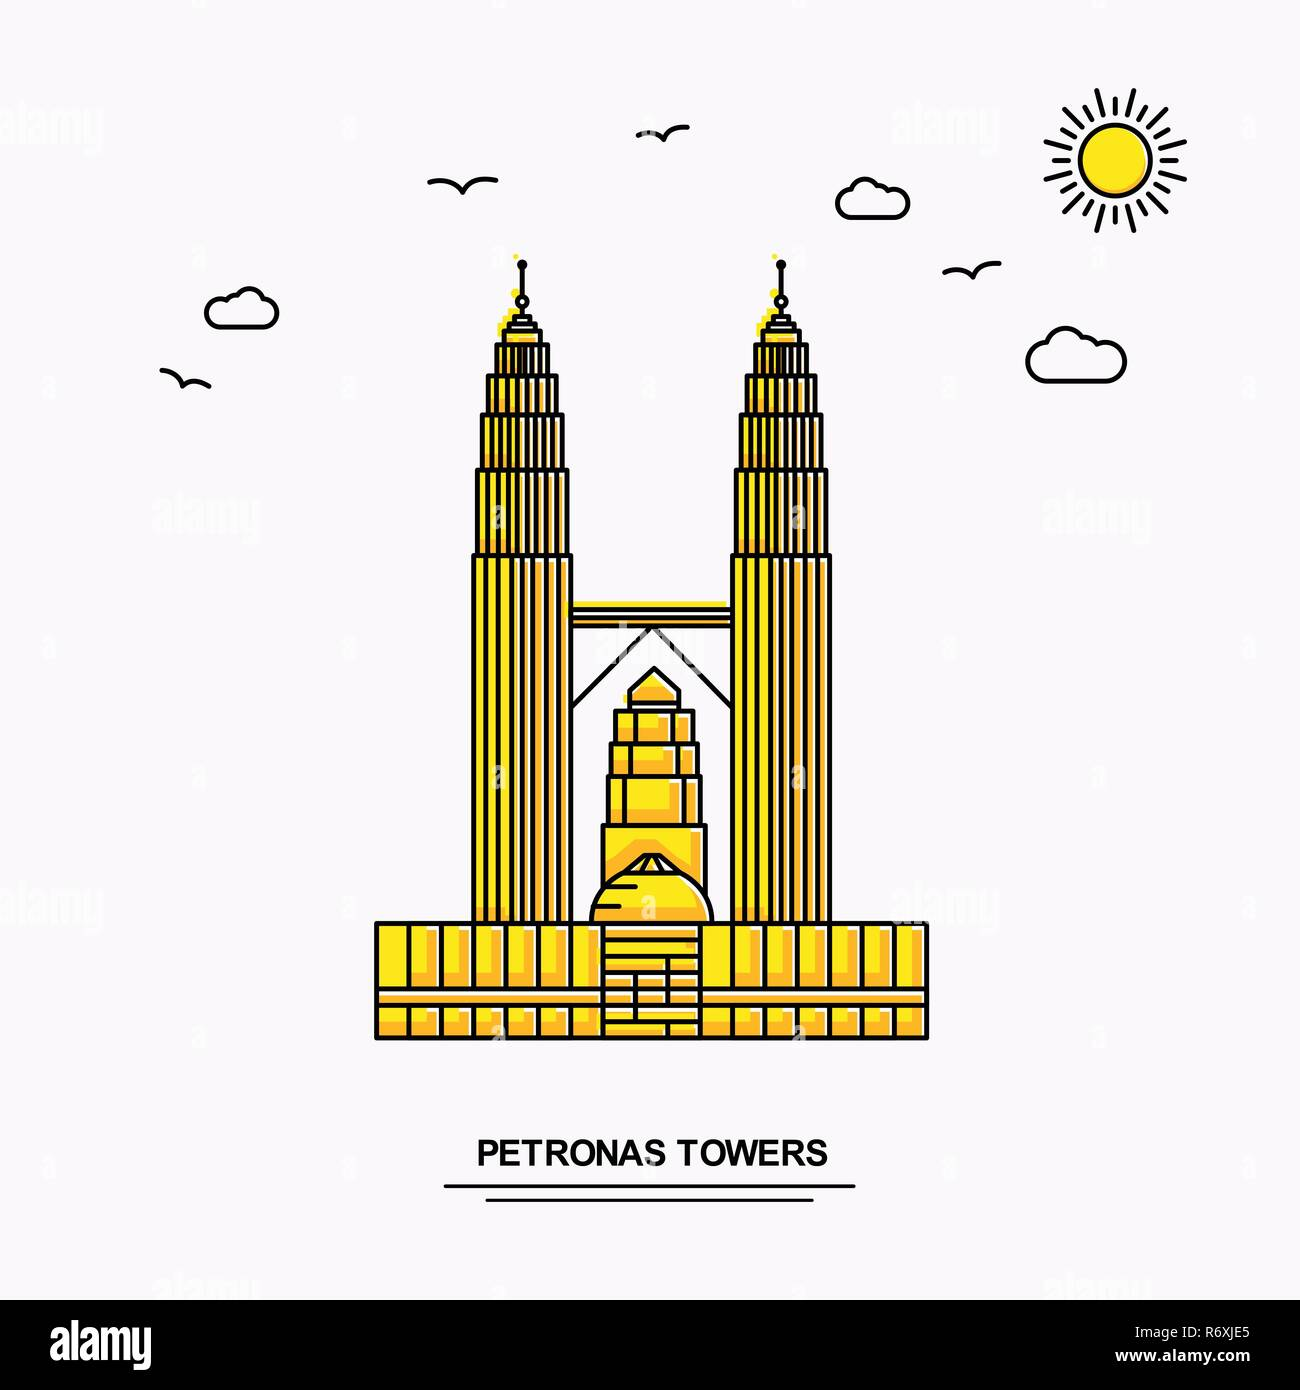 PETRONAS TOWERS Monument Poster Template. World Travel Yellow illustration Background in Line Style with beauture nature Scene - Stock Vector